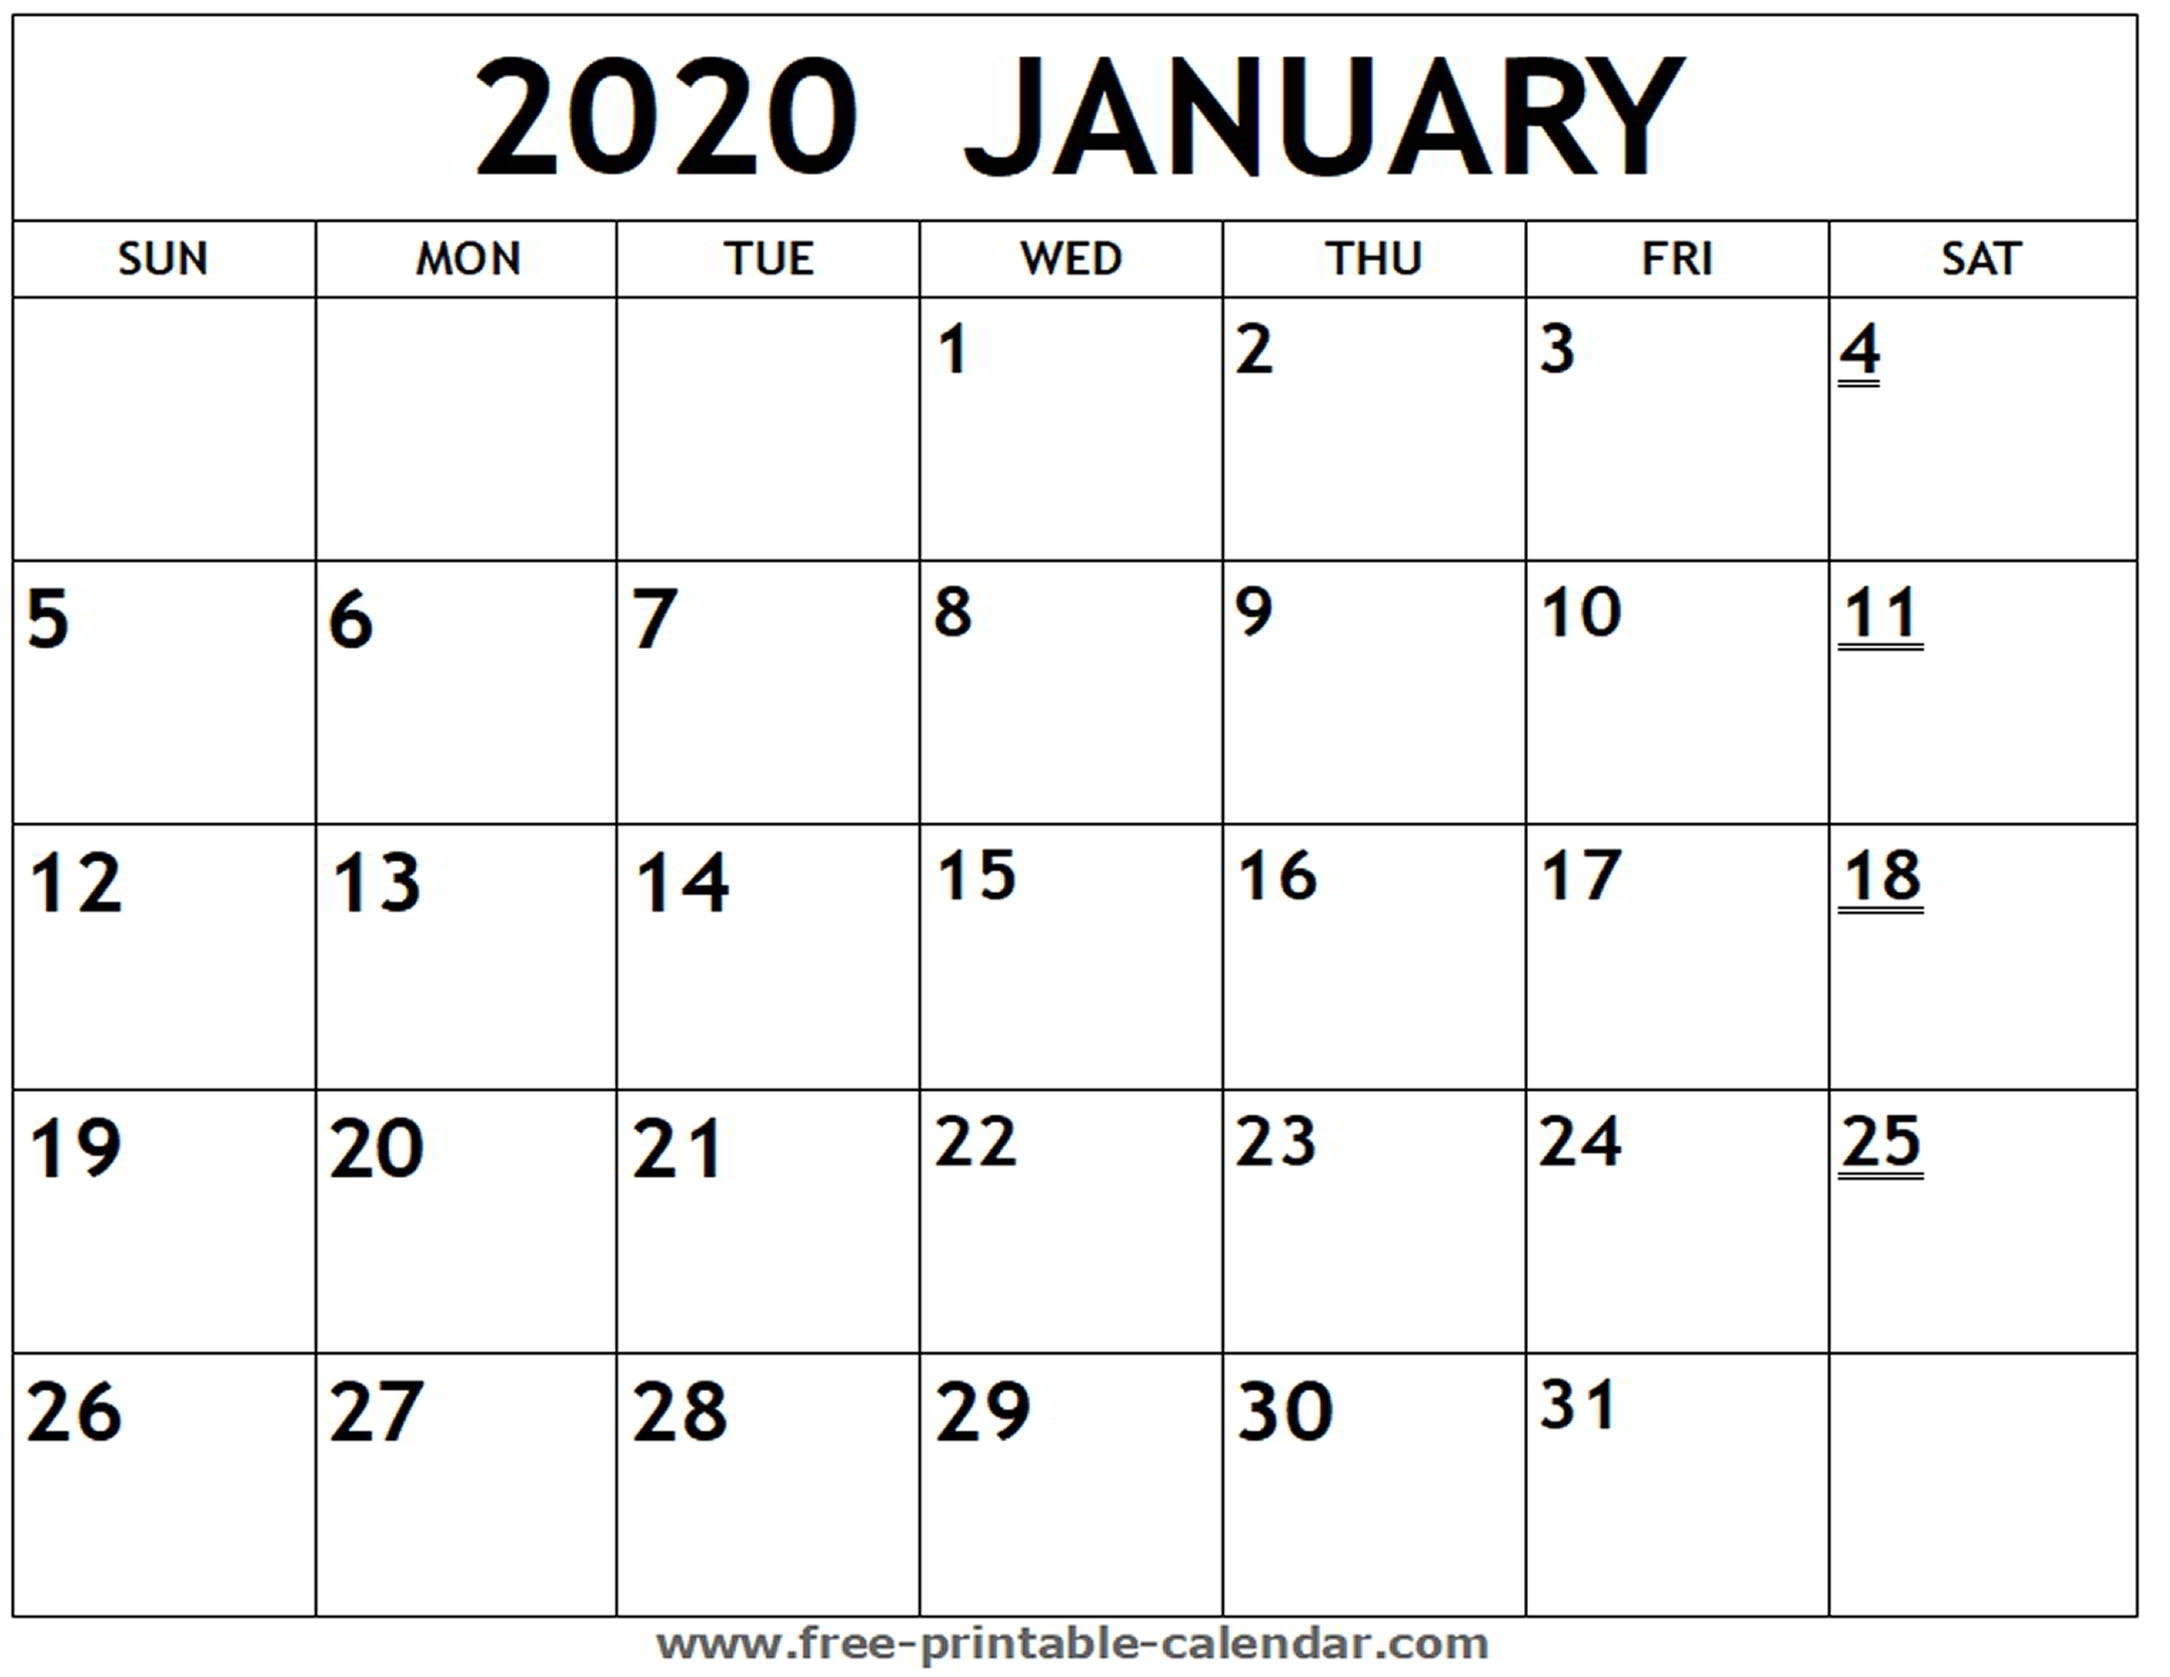 Printable 2020 January Calendar - Free-Printable-Calendar within Printable Calendar 2020 Monthly With Holidays